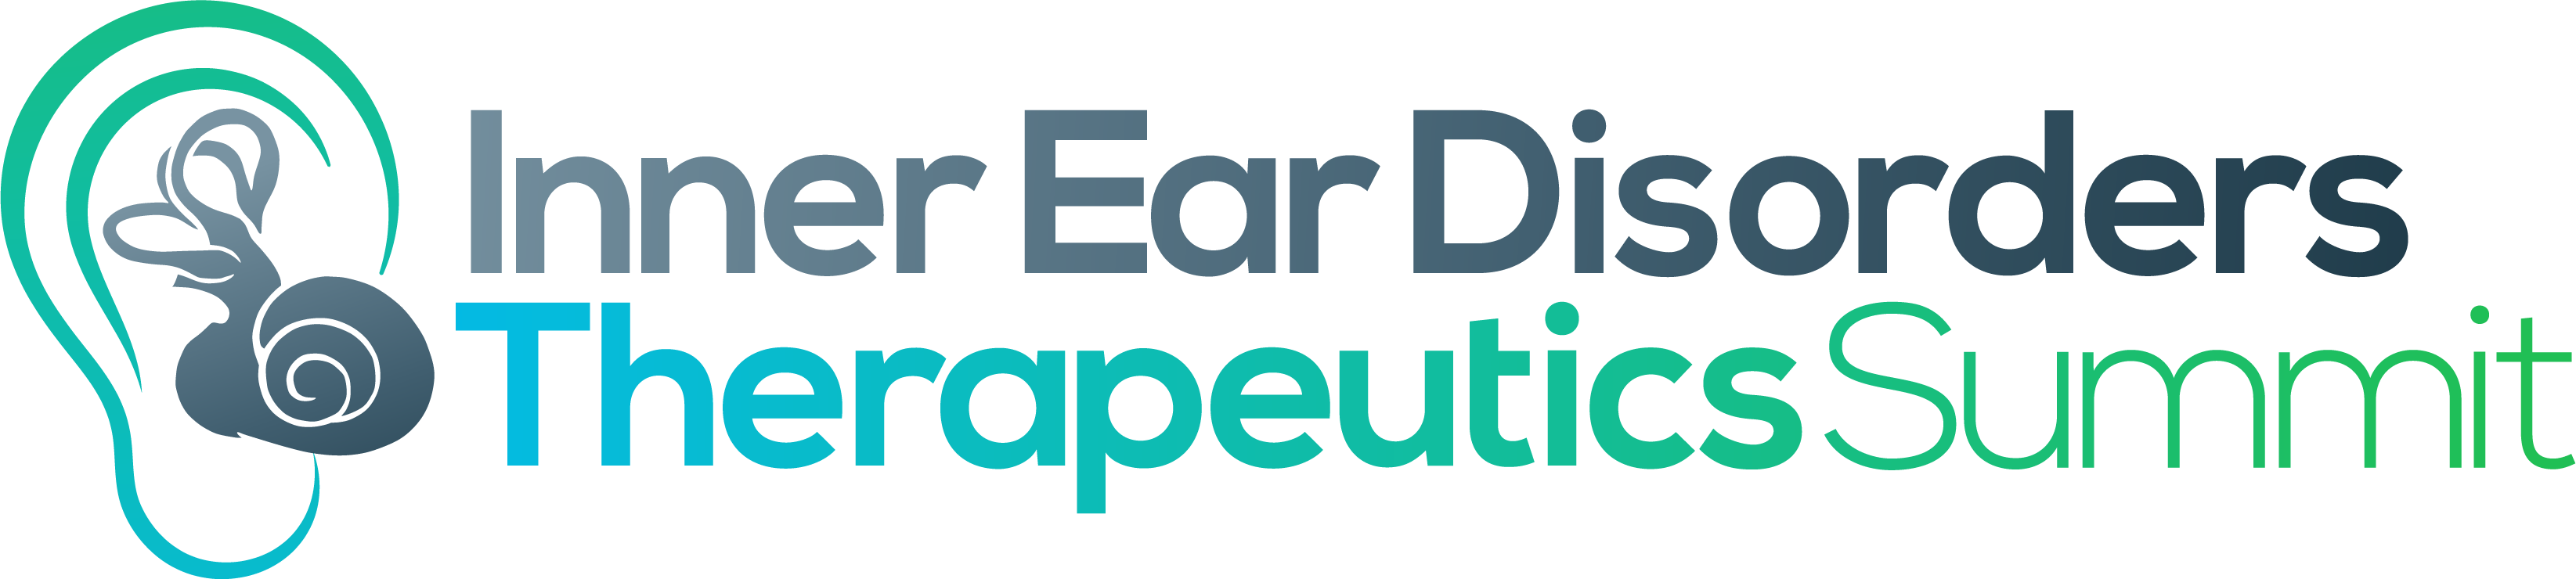 21026 - Inner Ear Disorders Therapeutics Logo